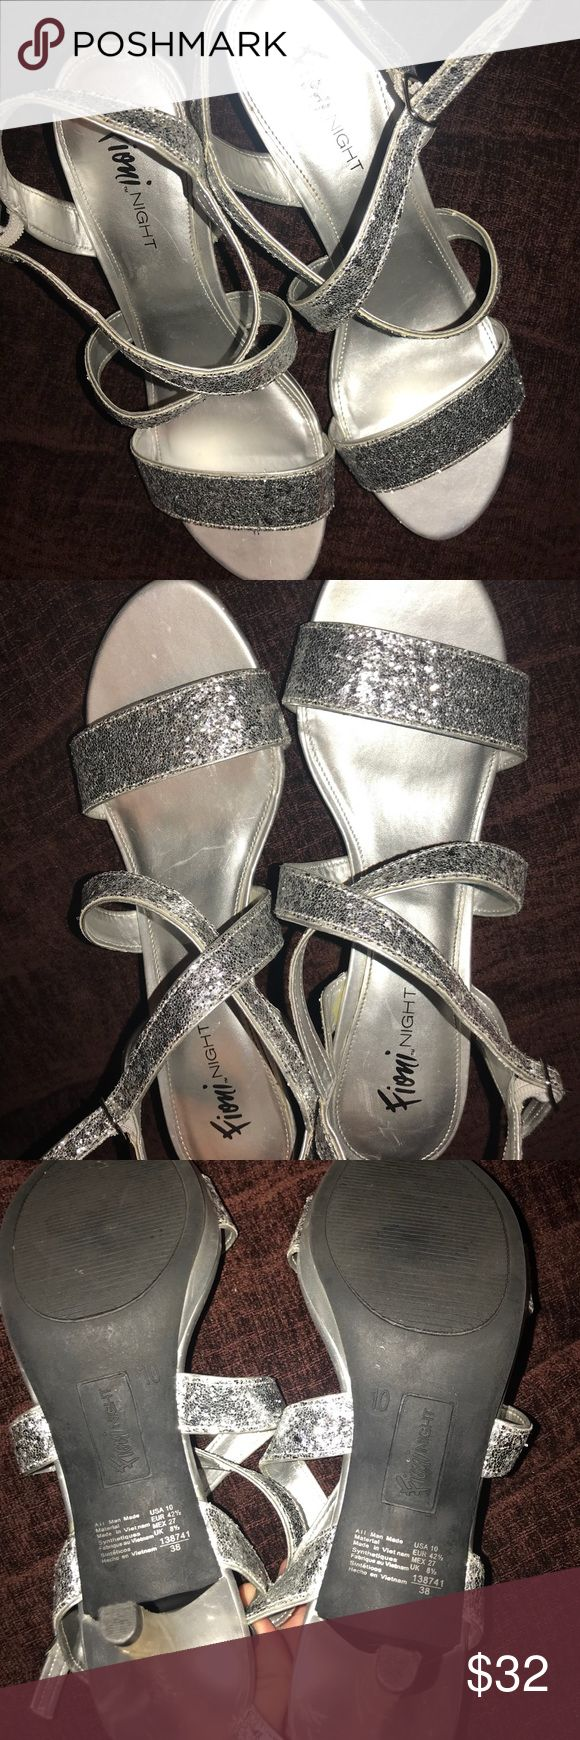 Silver Sparkly Heels Silver sparkly heels. Size 10. Worn once.  🌟I ship same day if purchased before 4 pm 🌟Smoke/pet free home 🌟Open to trades 🌟Open to offers FIONI Night Shoes Heels